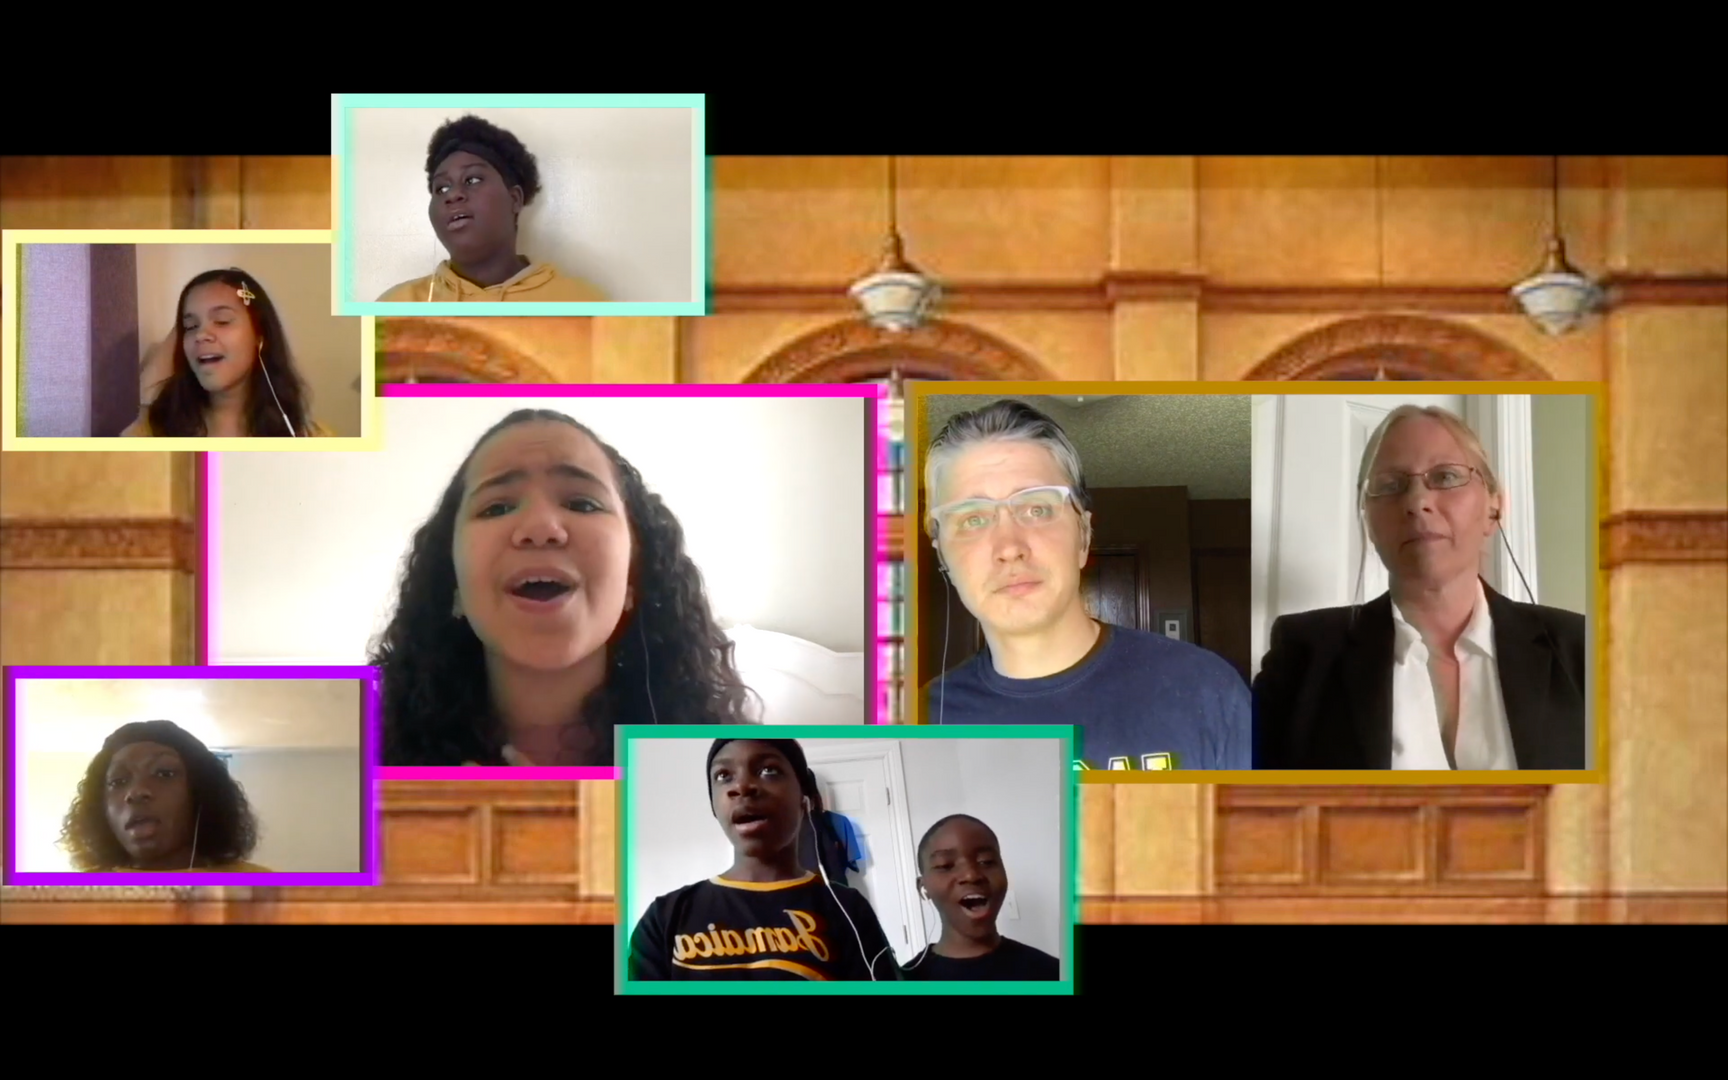 Students singing in virtual screen boxes in a nice house